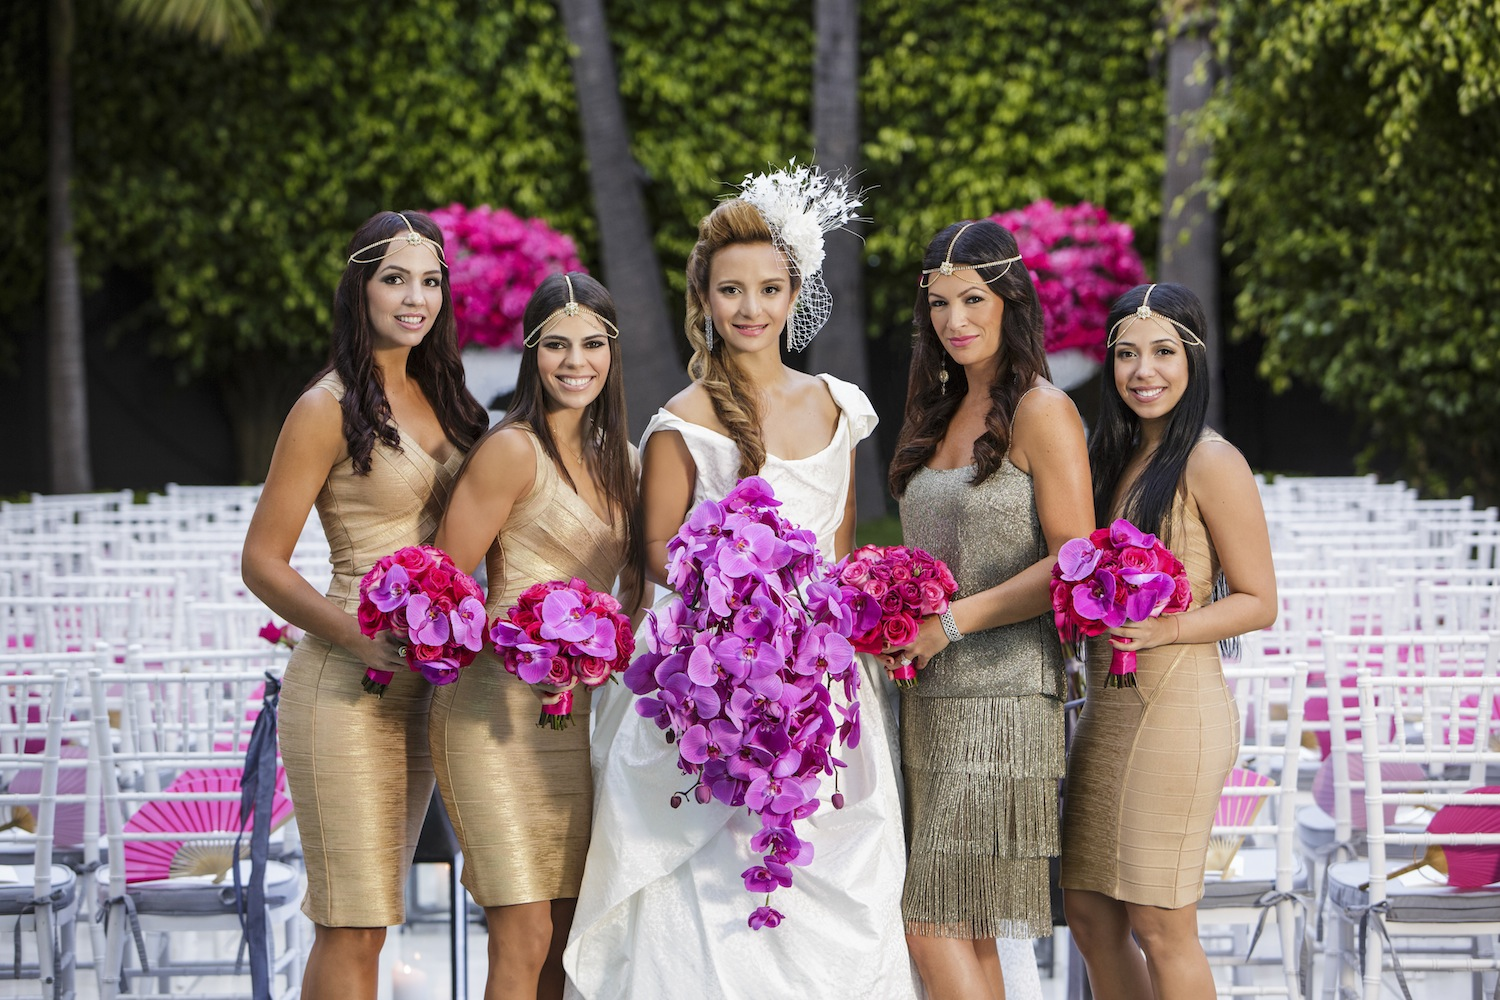 Gold bodycon short bridesmaid dresses orchid bouquets headpieces